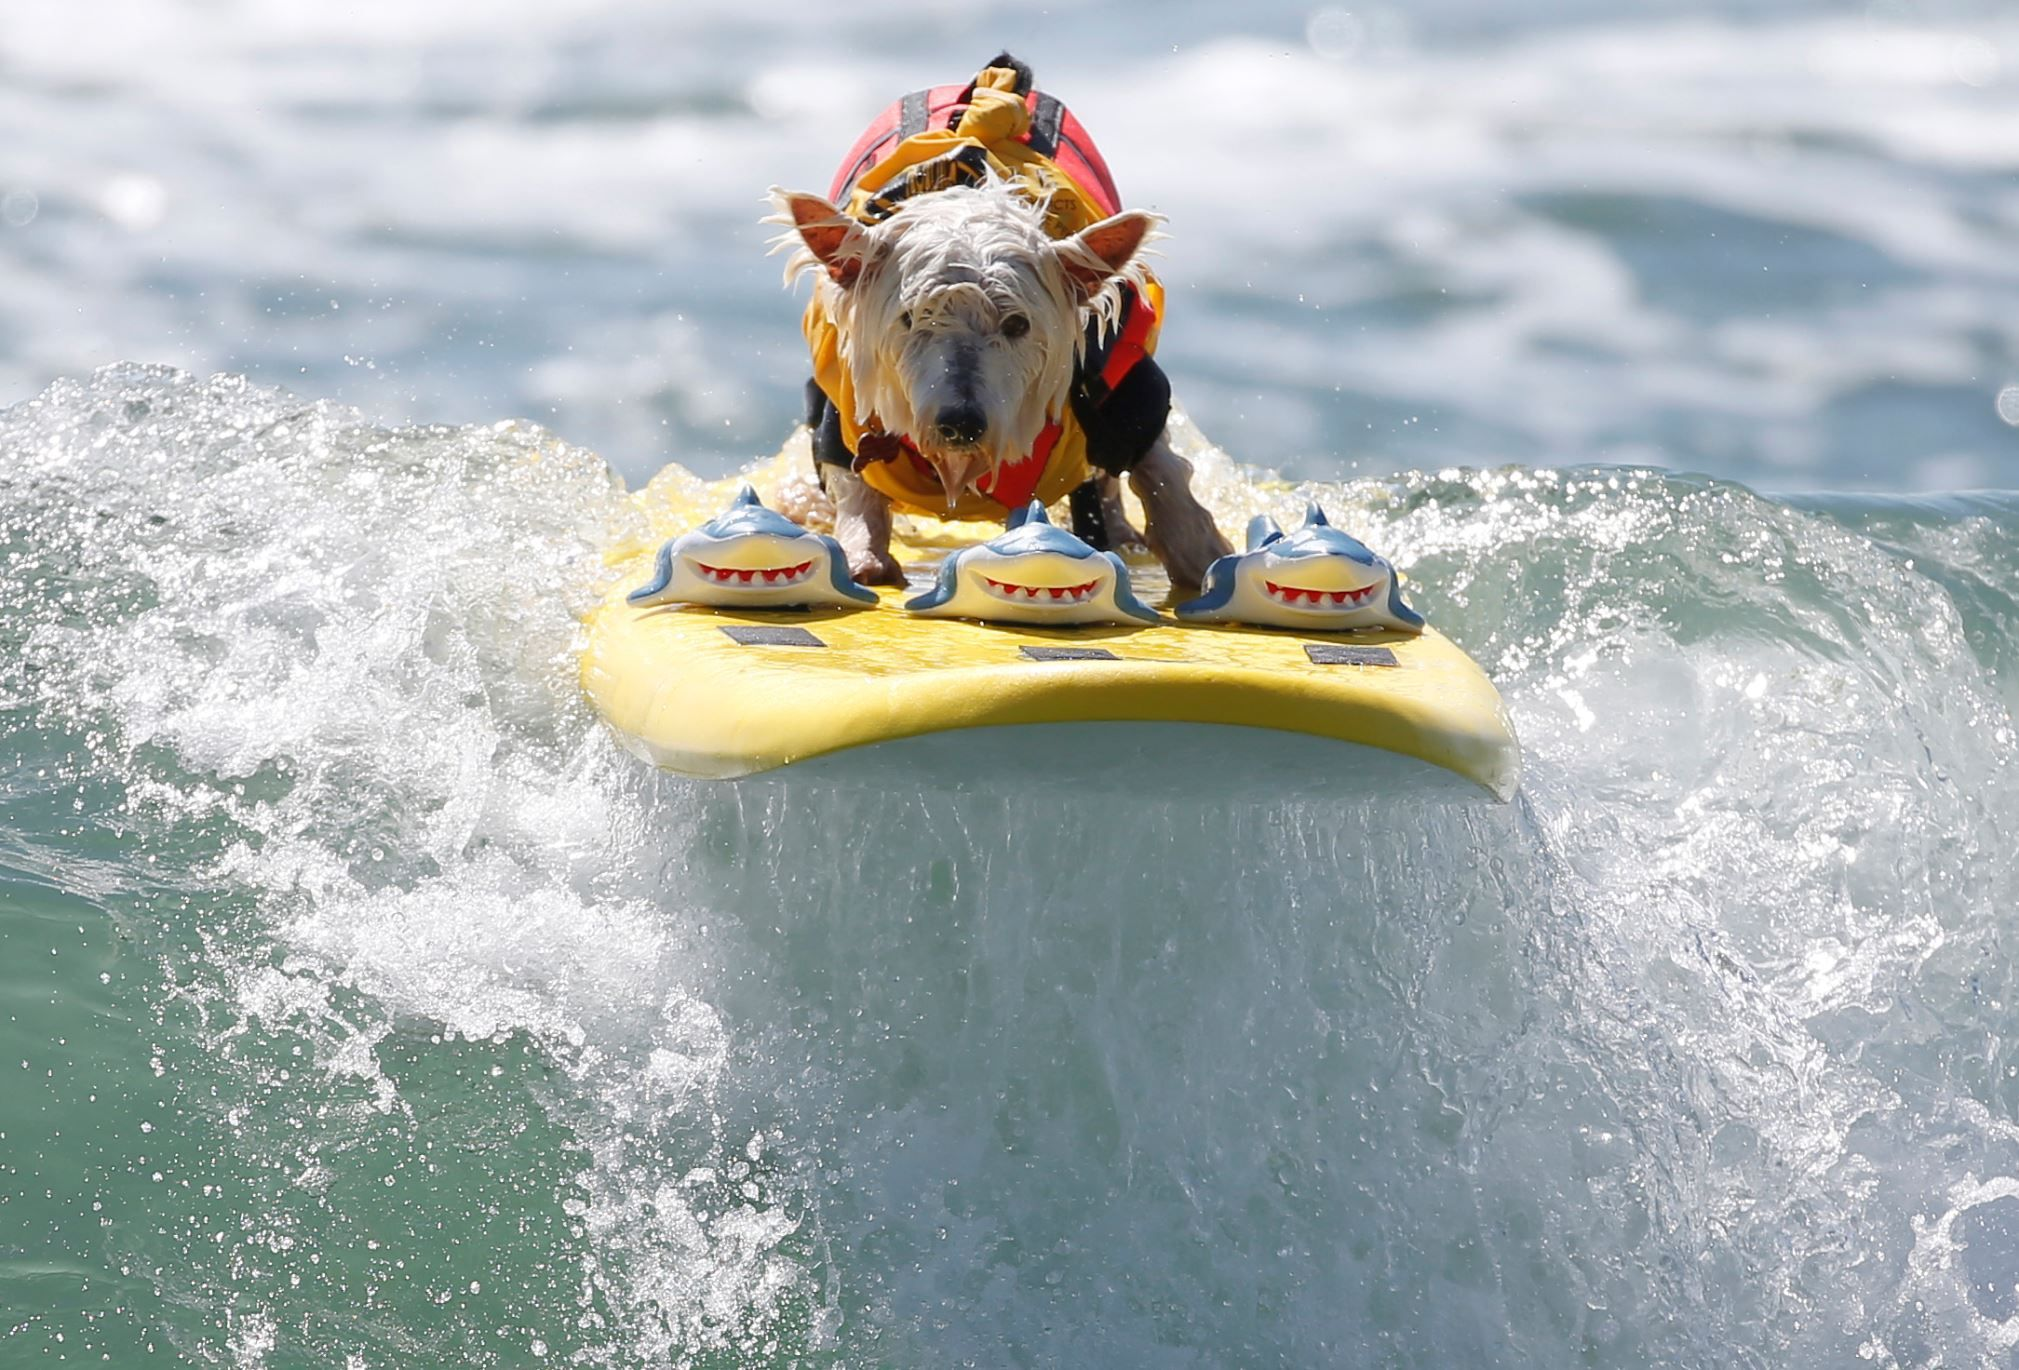 Surfer Dog Abbie Girl rides a wave in the division during the